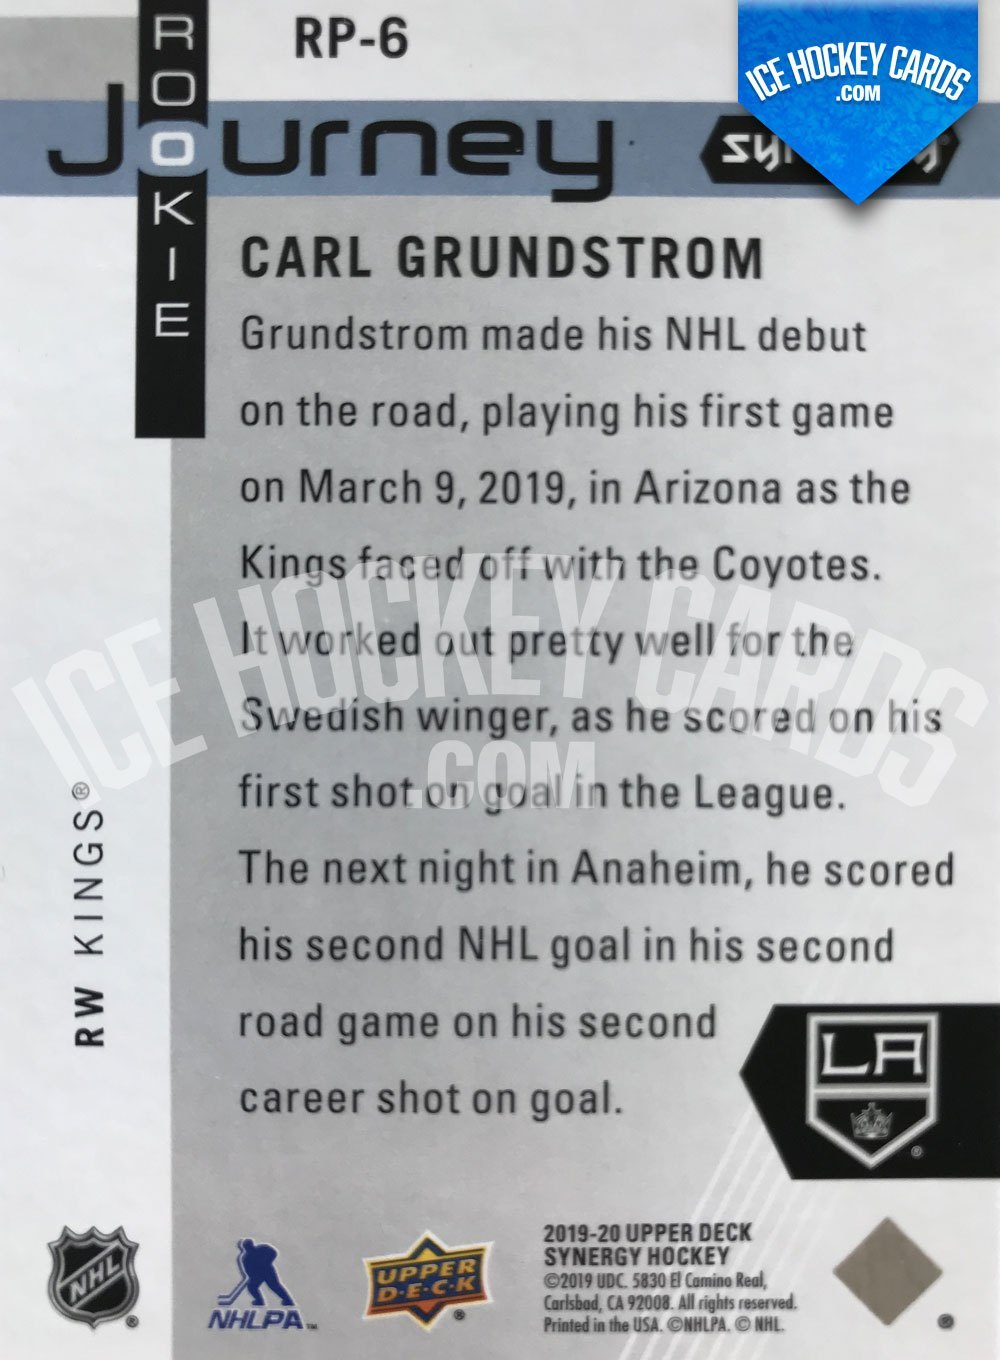 Upper Deck - Synergy-19-20 - Carl Grundstrom Rookie Journey back